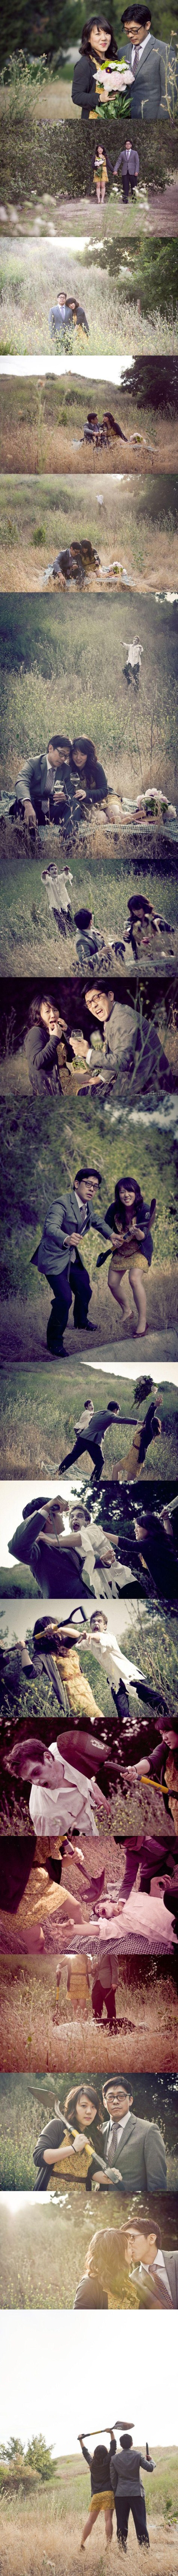 Best Engagement Photo Ever (bests of pinterest gallery)